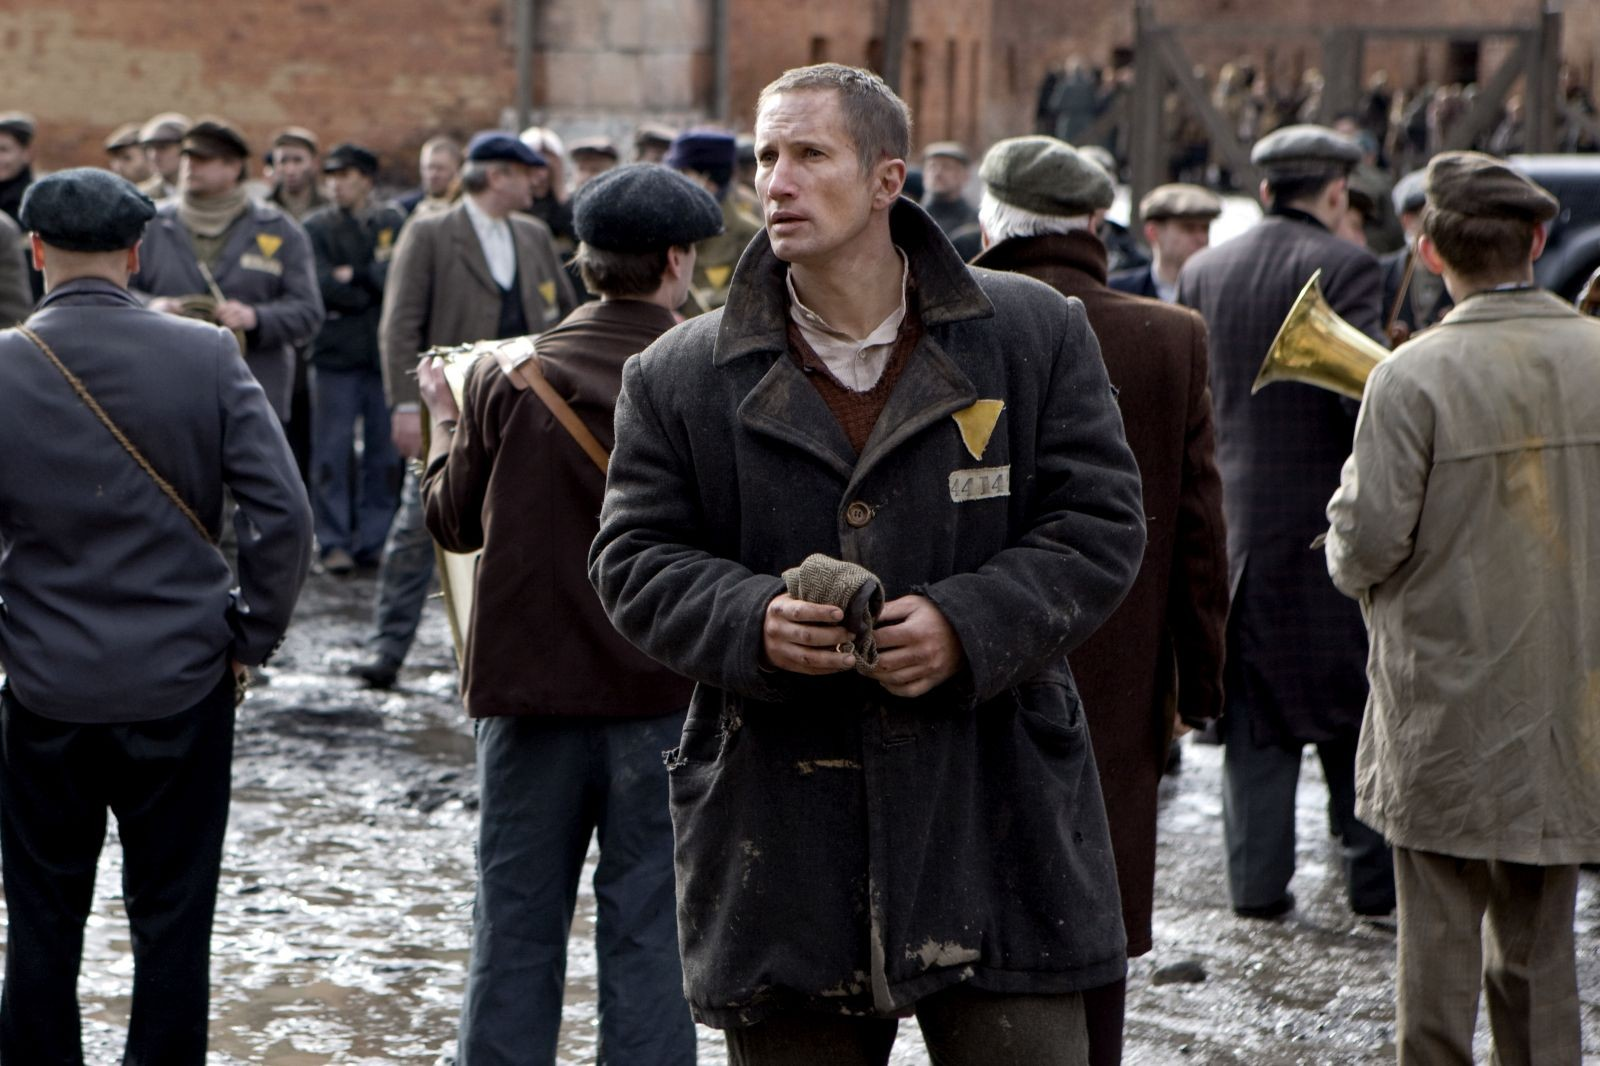 Agnieszka Holland's In Darkness  (2012) is one of the more recent Polish films to address the Holocaust